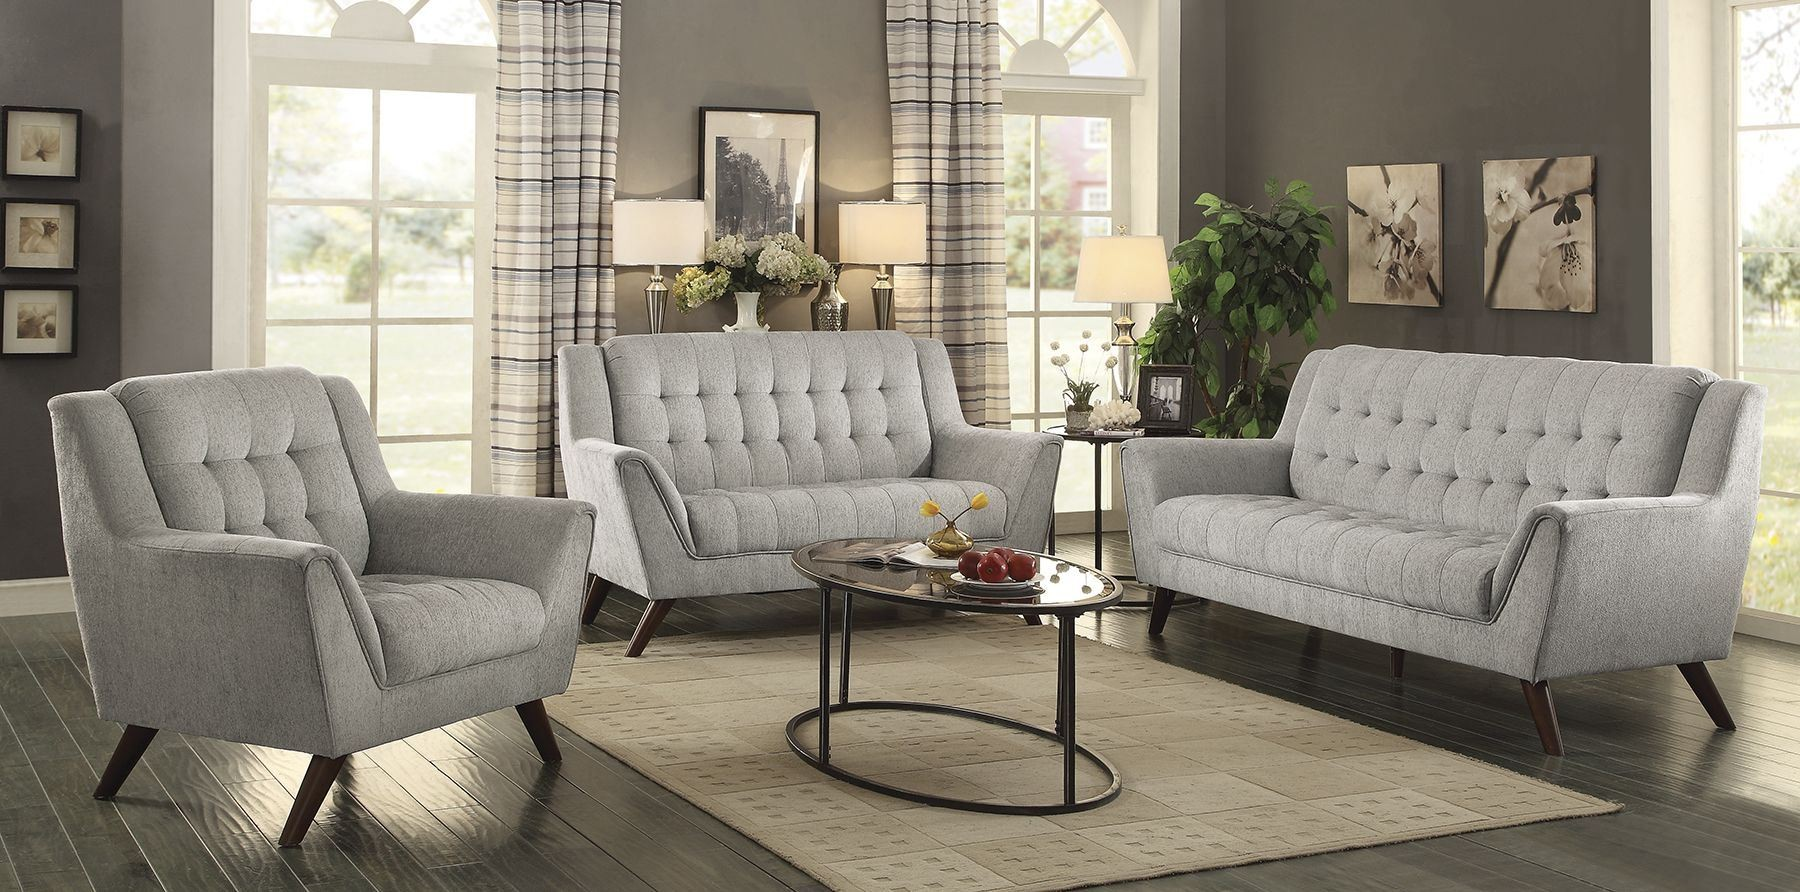 Baby natalia dove gray living room set from coaster for Front room furniture sets